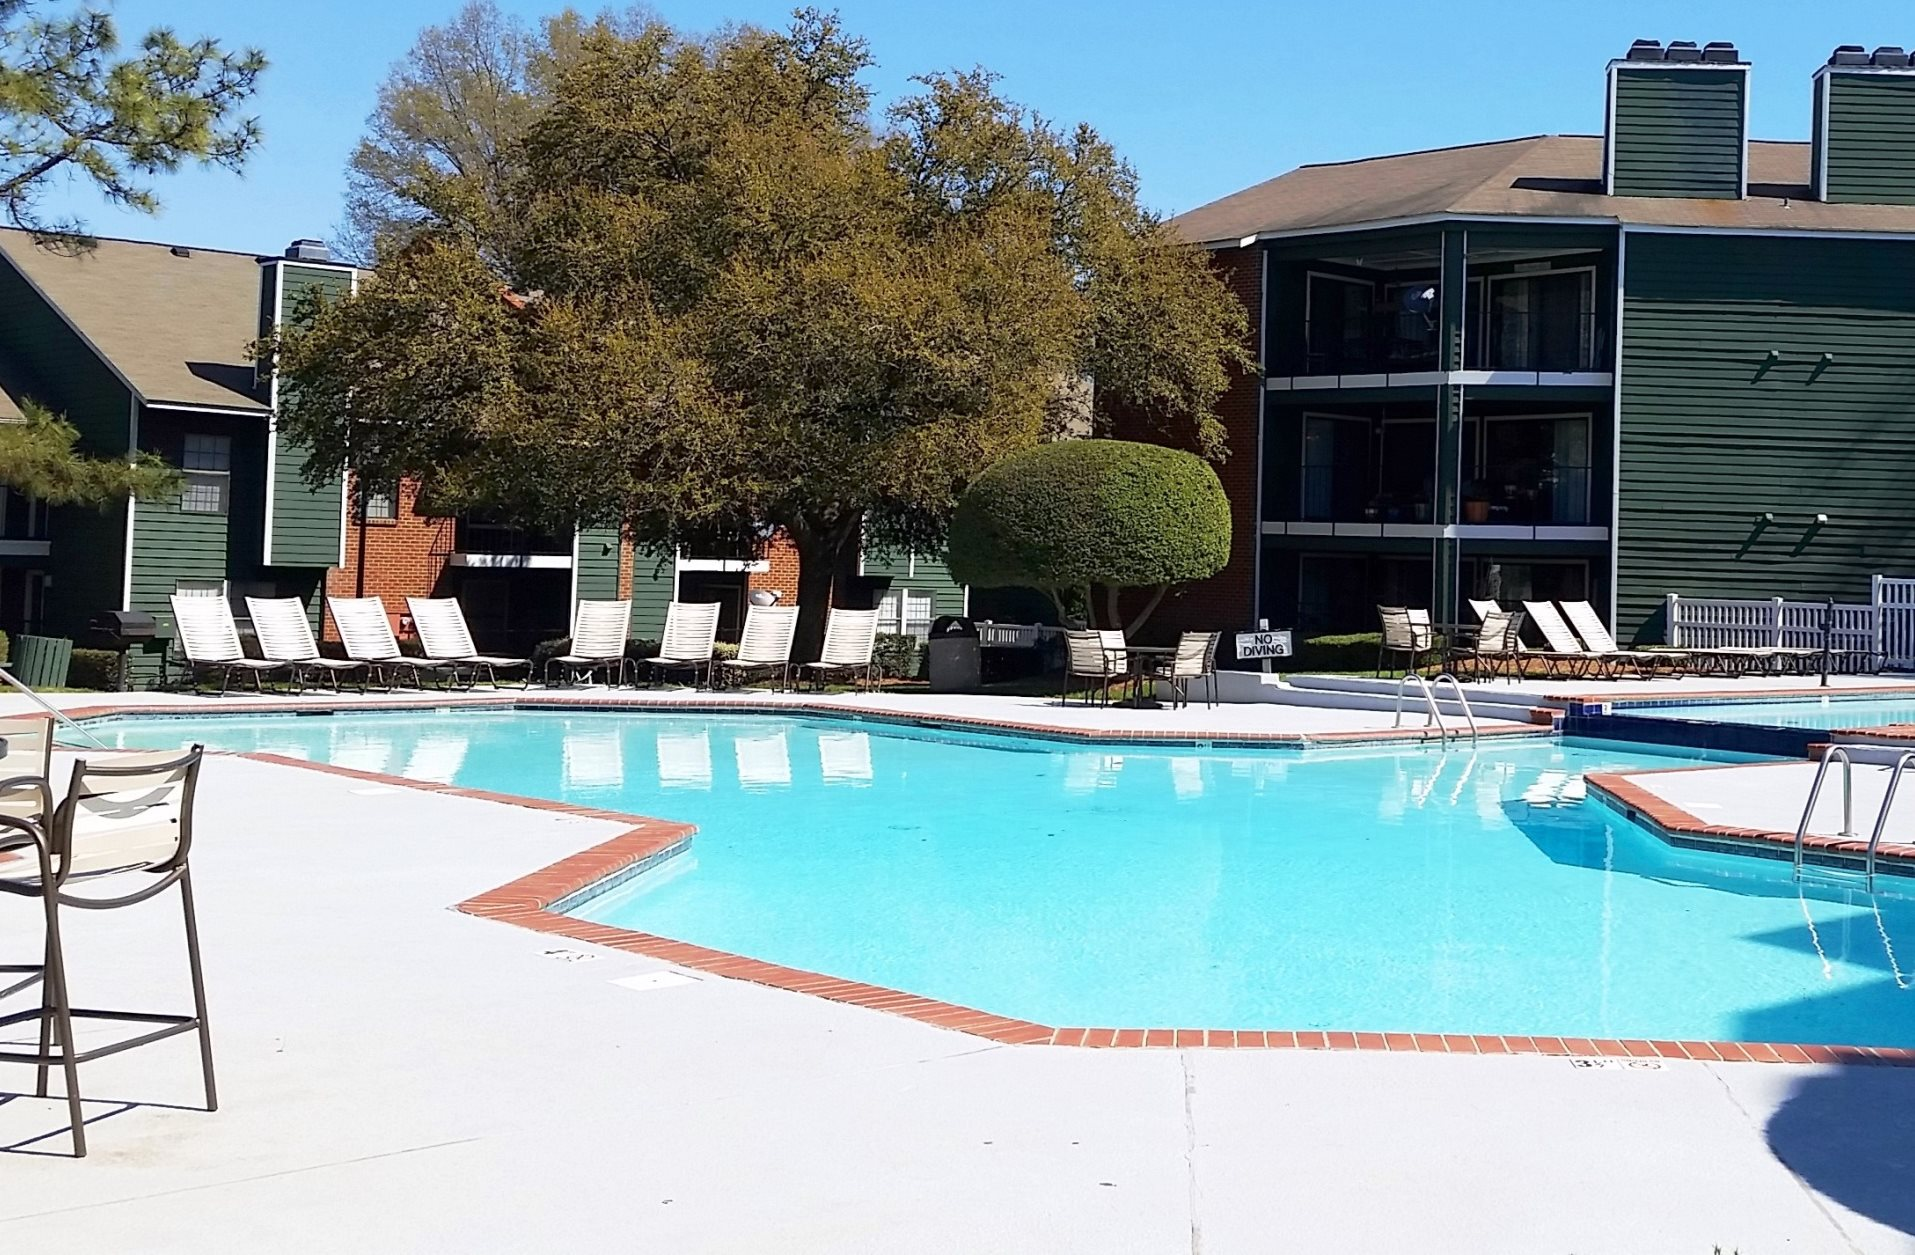 Beacon hill apartments in charlotte nc - Indoor swimming pools charlotte nc ...